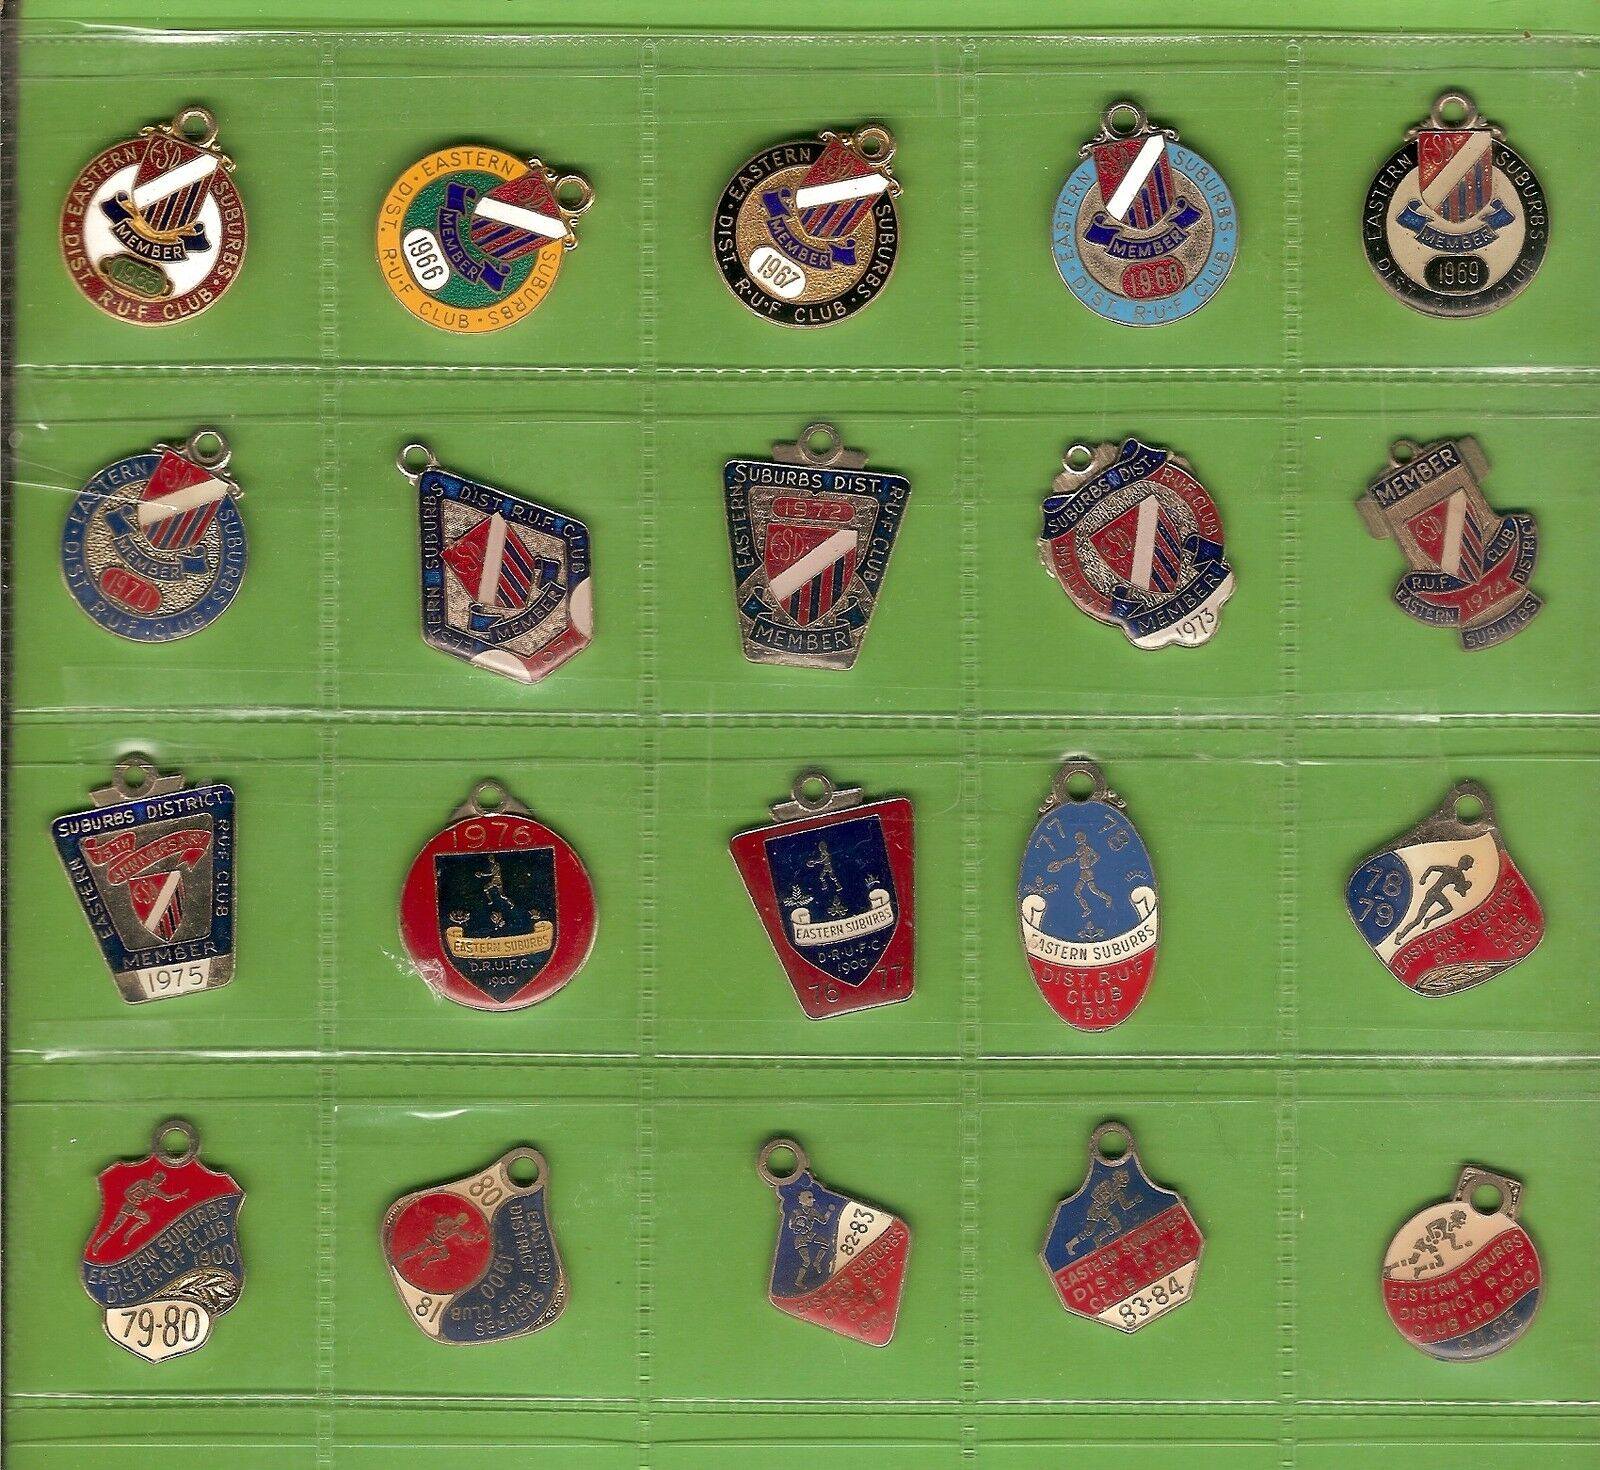 T54.  20  EASTERN SUBURBS  DISTRICT RUGBY UNION  MEMBER'S BADGES 1965 to 1985